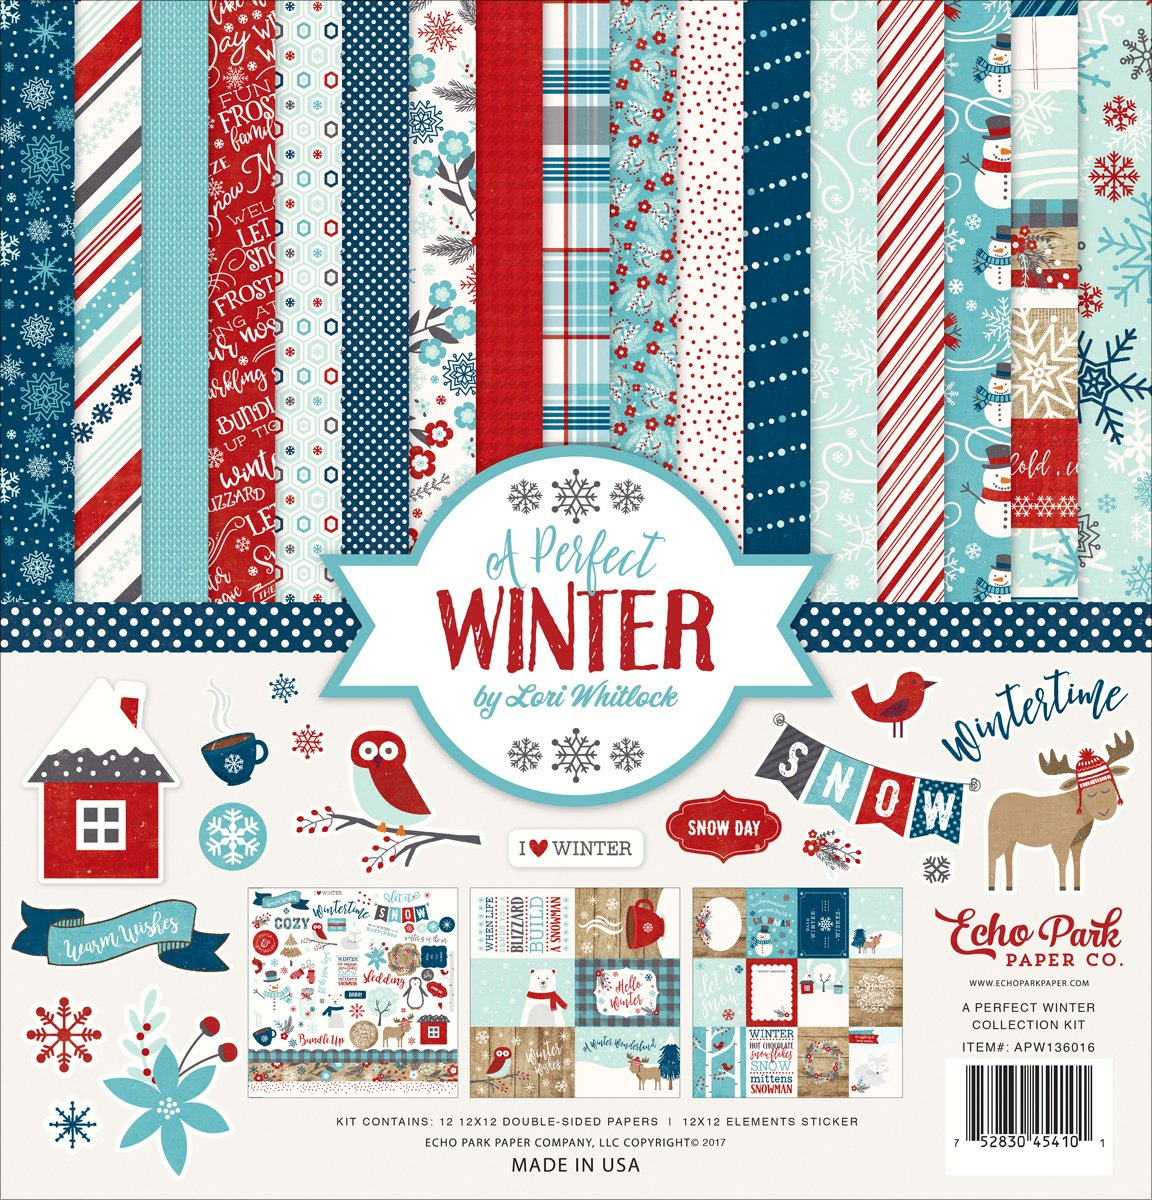 Echo Park Paper Company Collection Kit, Eine Perfekte Winter, 12-x-12-inch APW136016